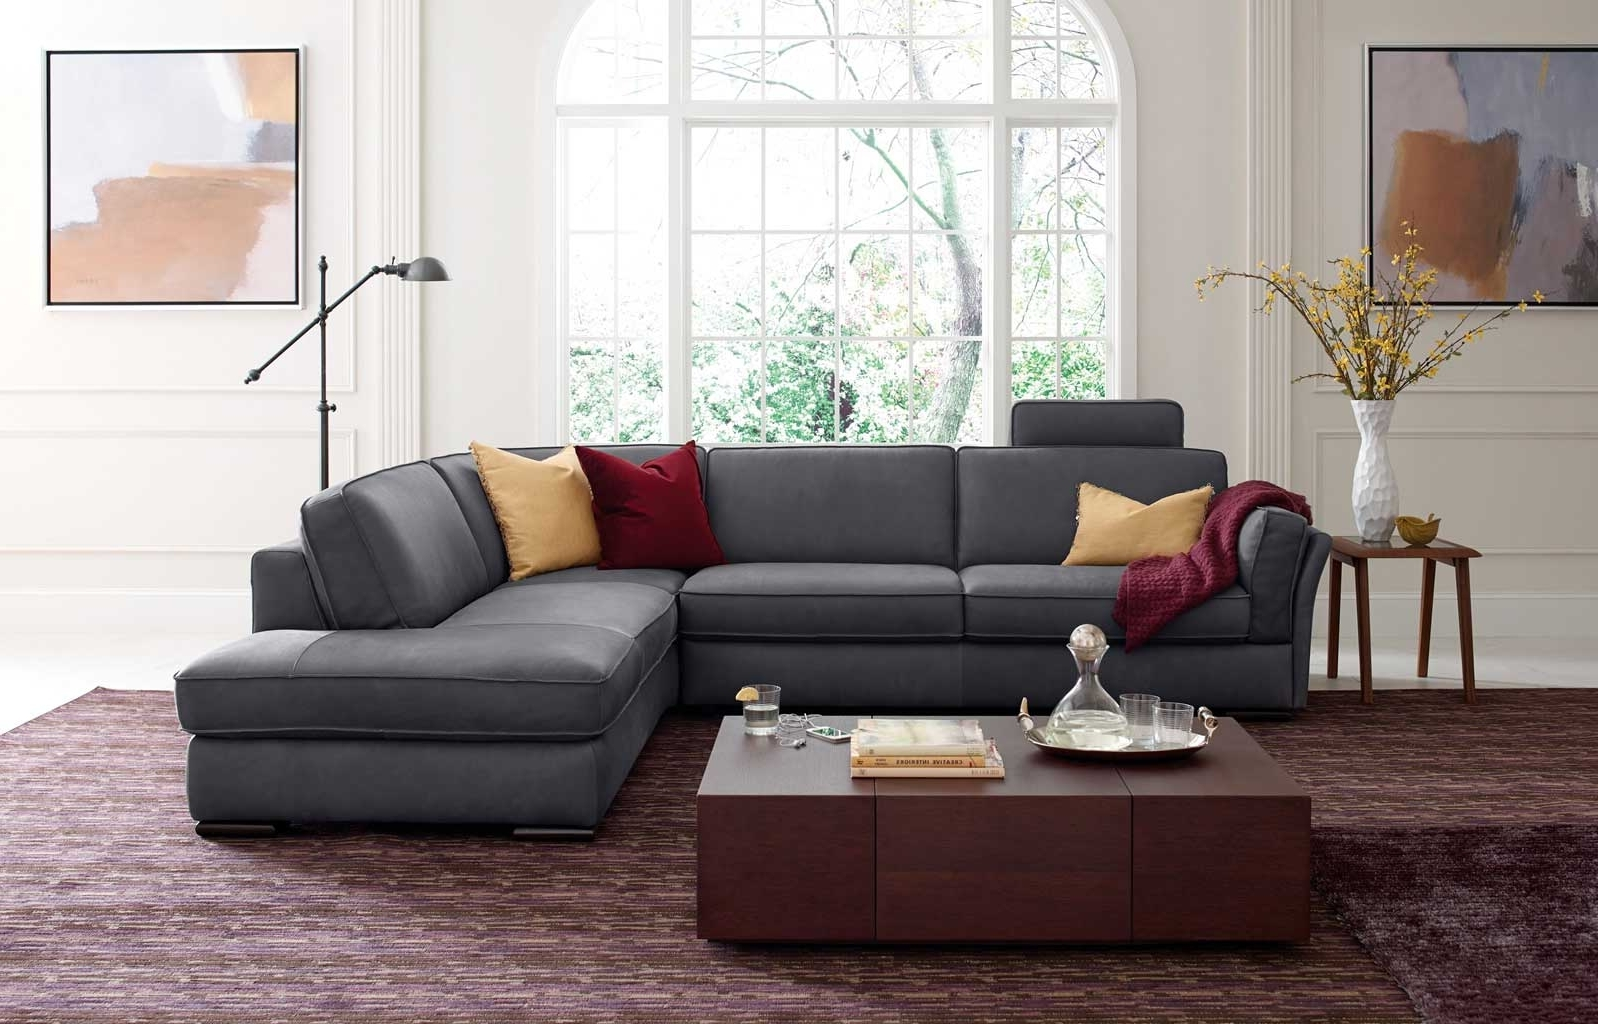 Most Recently Released Natuzzi Sectional Sofas Pertaining To Natuzzi Editions Trieste Ii 117 Italian Tanned Leather Sectional (View 19 of 20)